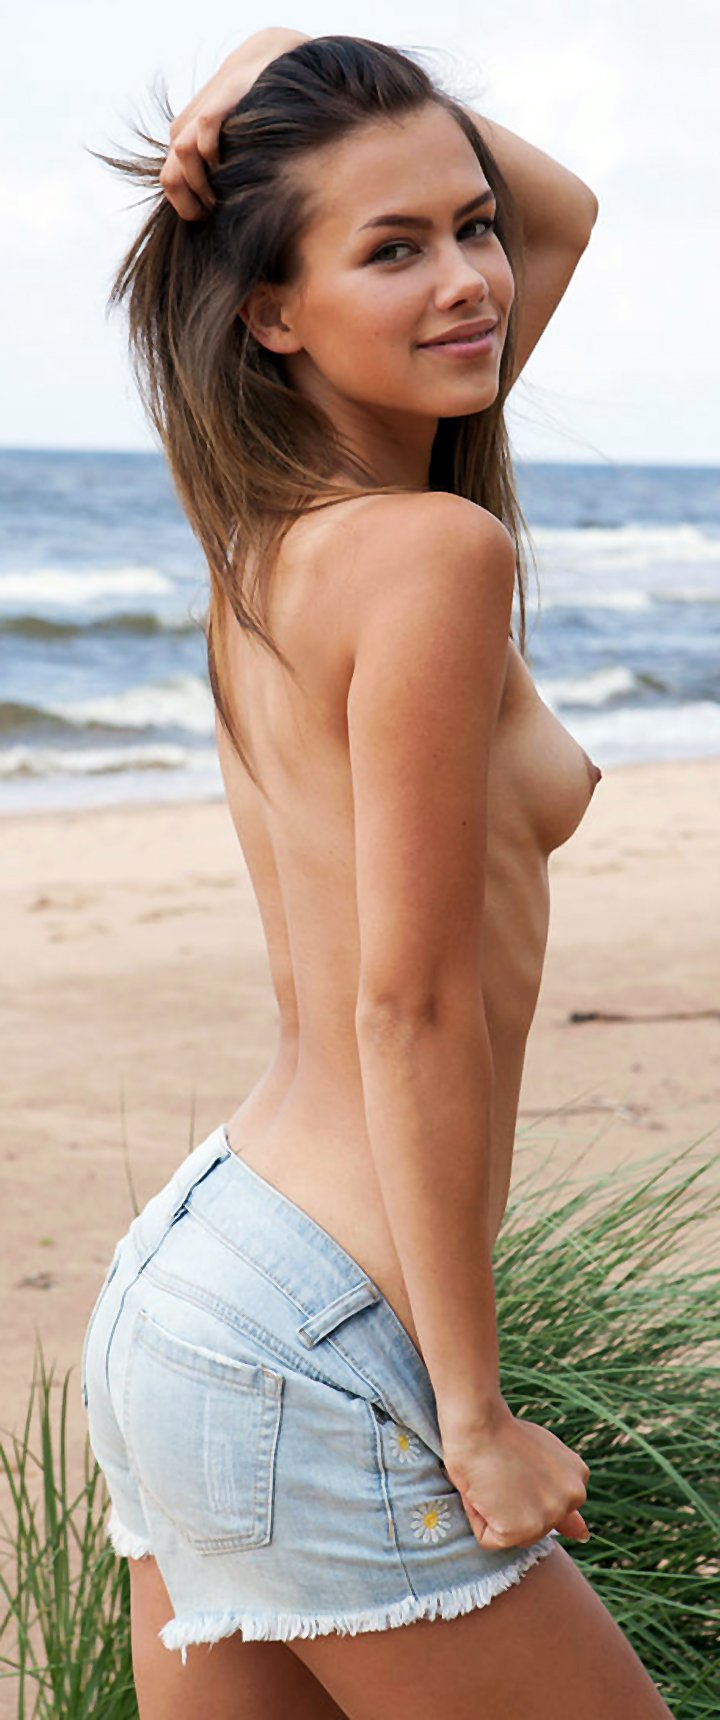 Slim girl Lada A takes off denim shorts to go totally naked at the beach